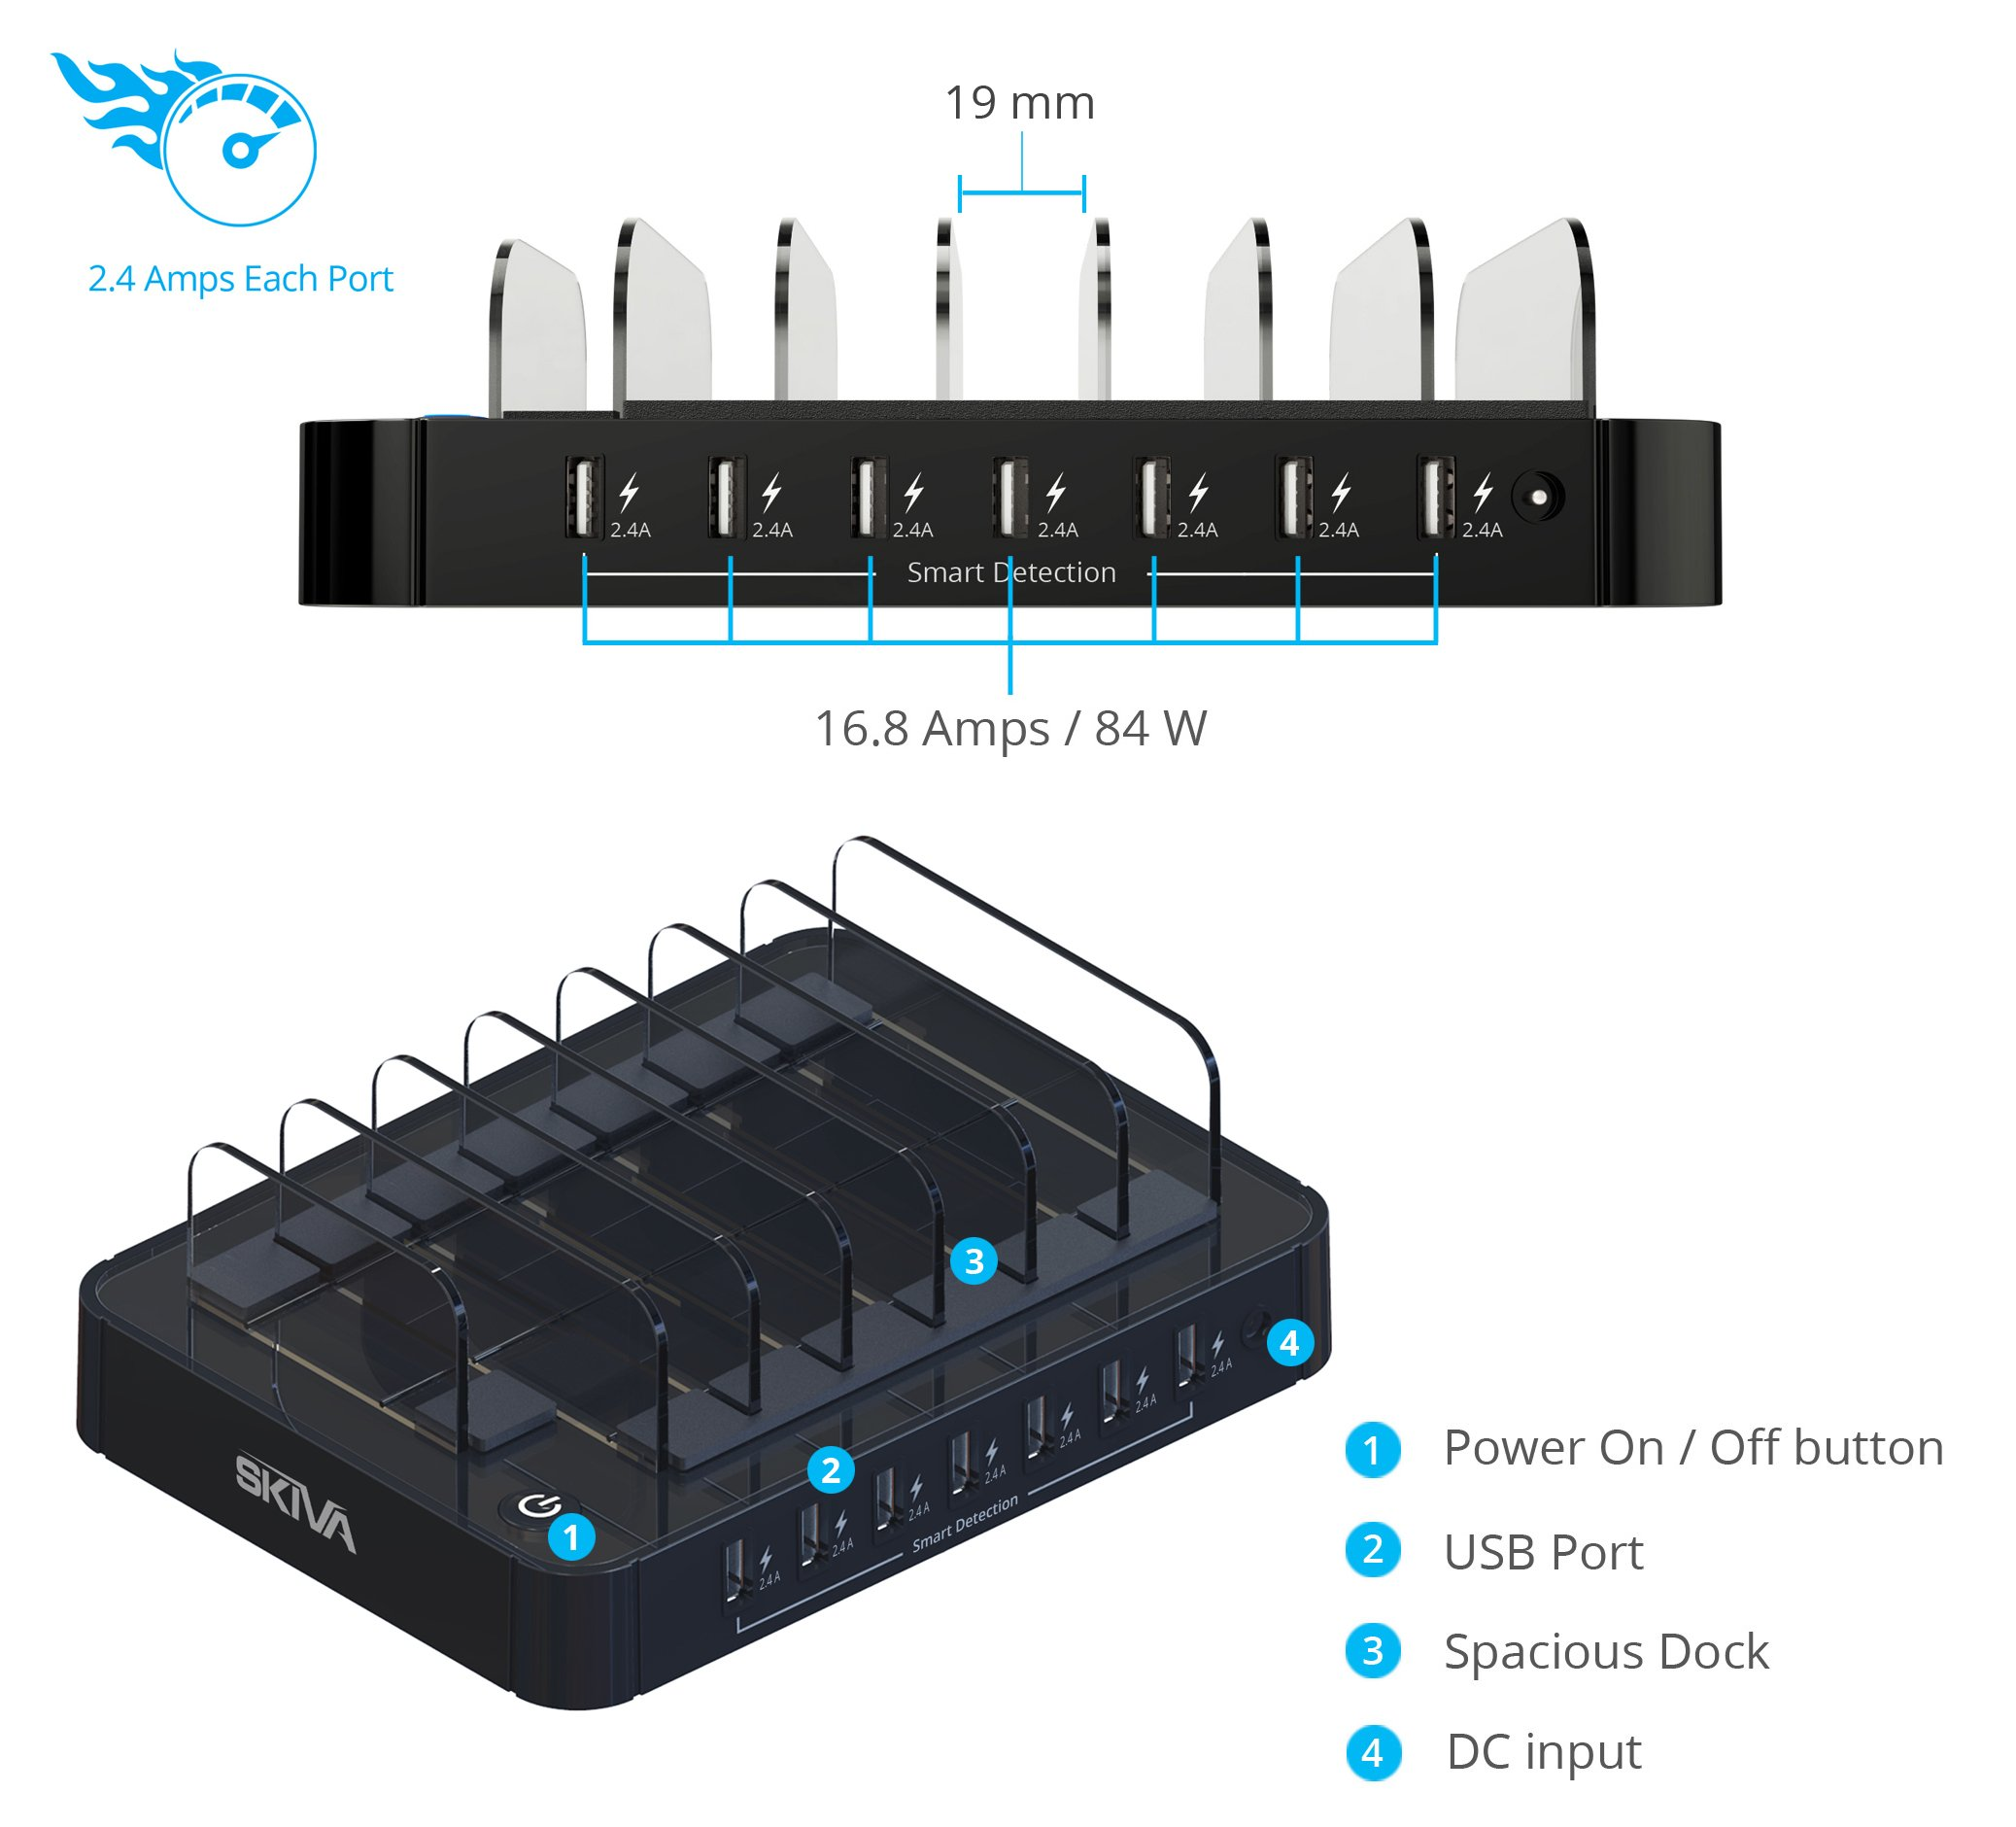 Skiva StandCharger 7-Port 84-Watts AC/Wall Charging Station with Fast 2.4 Amps Smart USB Ports for iPad Pro Air mini, iPhone X 8+ 8 & more (7 x Short Apple MFi Lightning Cables Included) [Model:AC123] by SKIVA (Image #10)